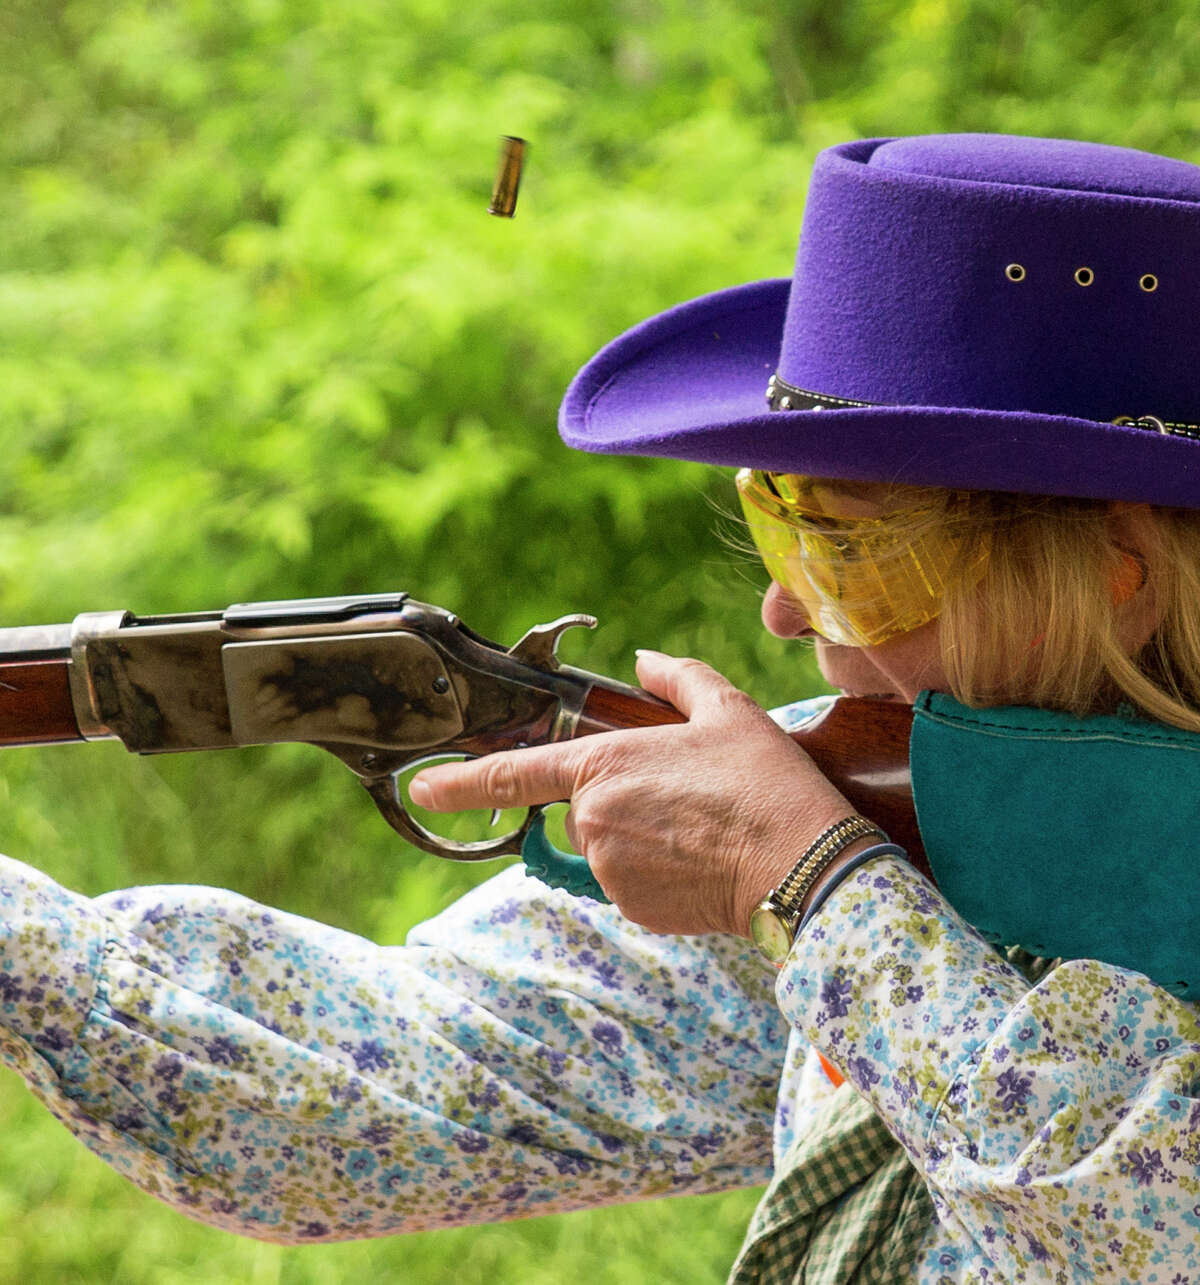 A shell flies from the rifle of Debbie Walsh during a cowboy action shooting match at A Place to Shoot in San Antonio on April 4, 2015. Walsh is a member of the South Texas Pistolaros, a cowboy action shooting club.